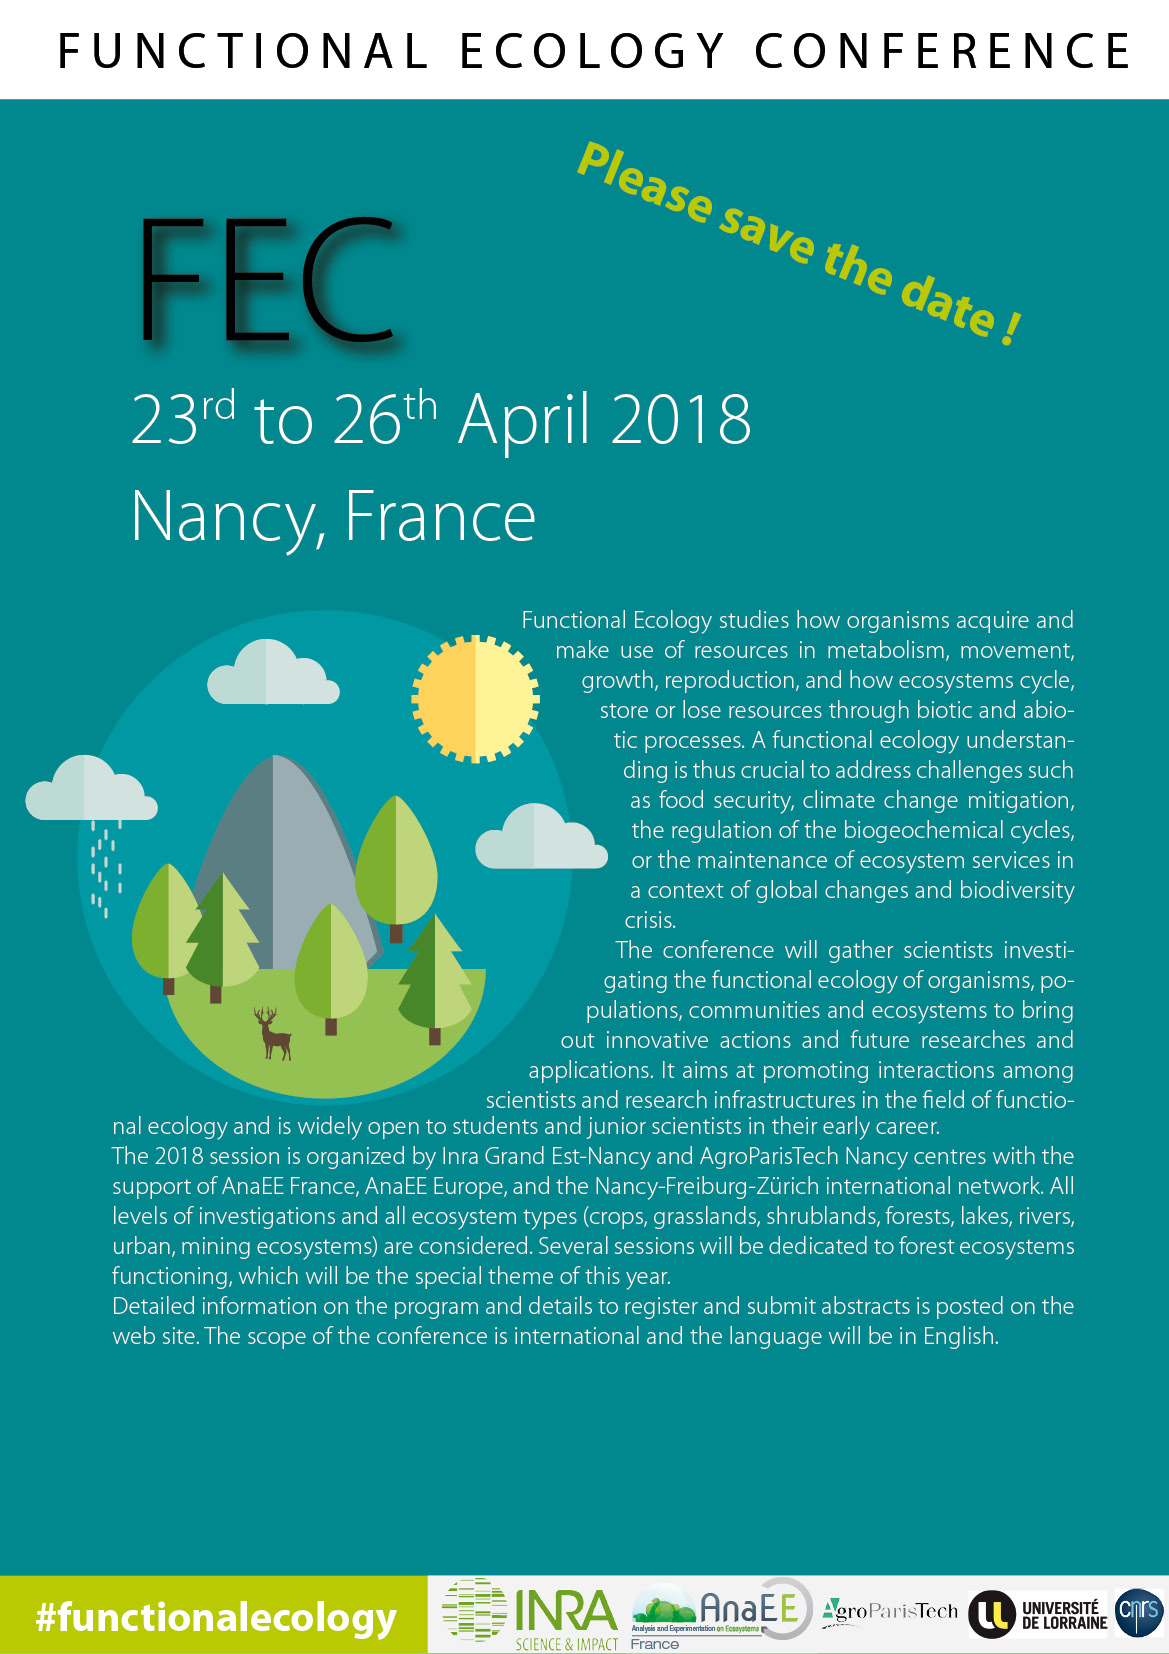 Annoucement of Functional Ecology Conference 2018